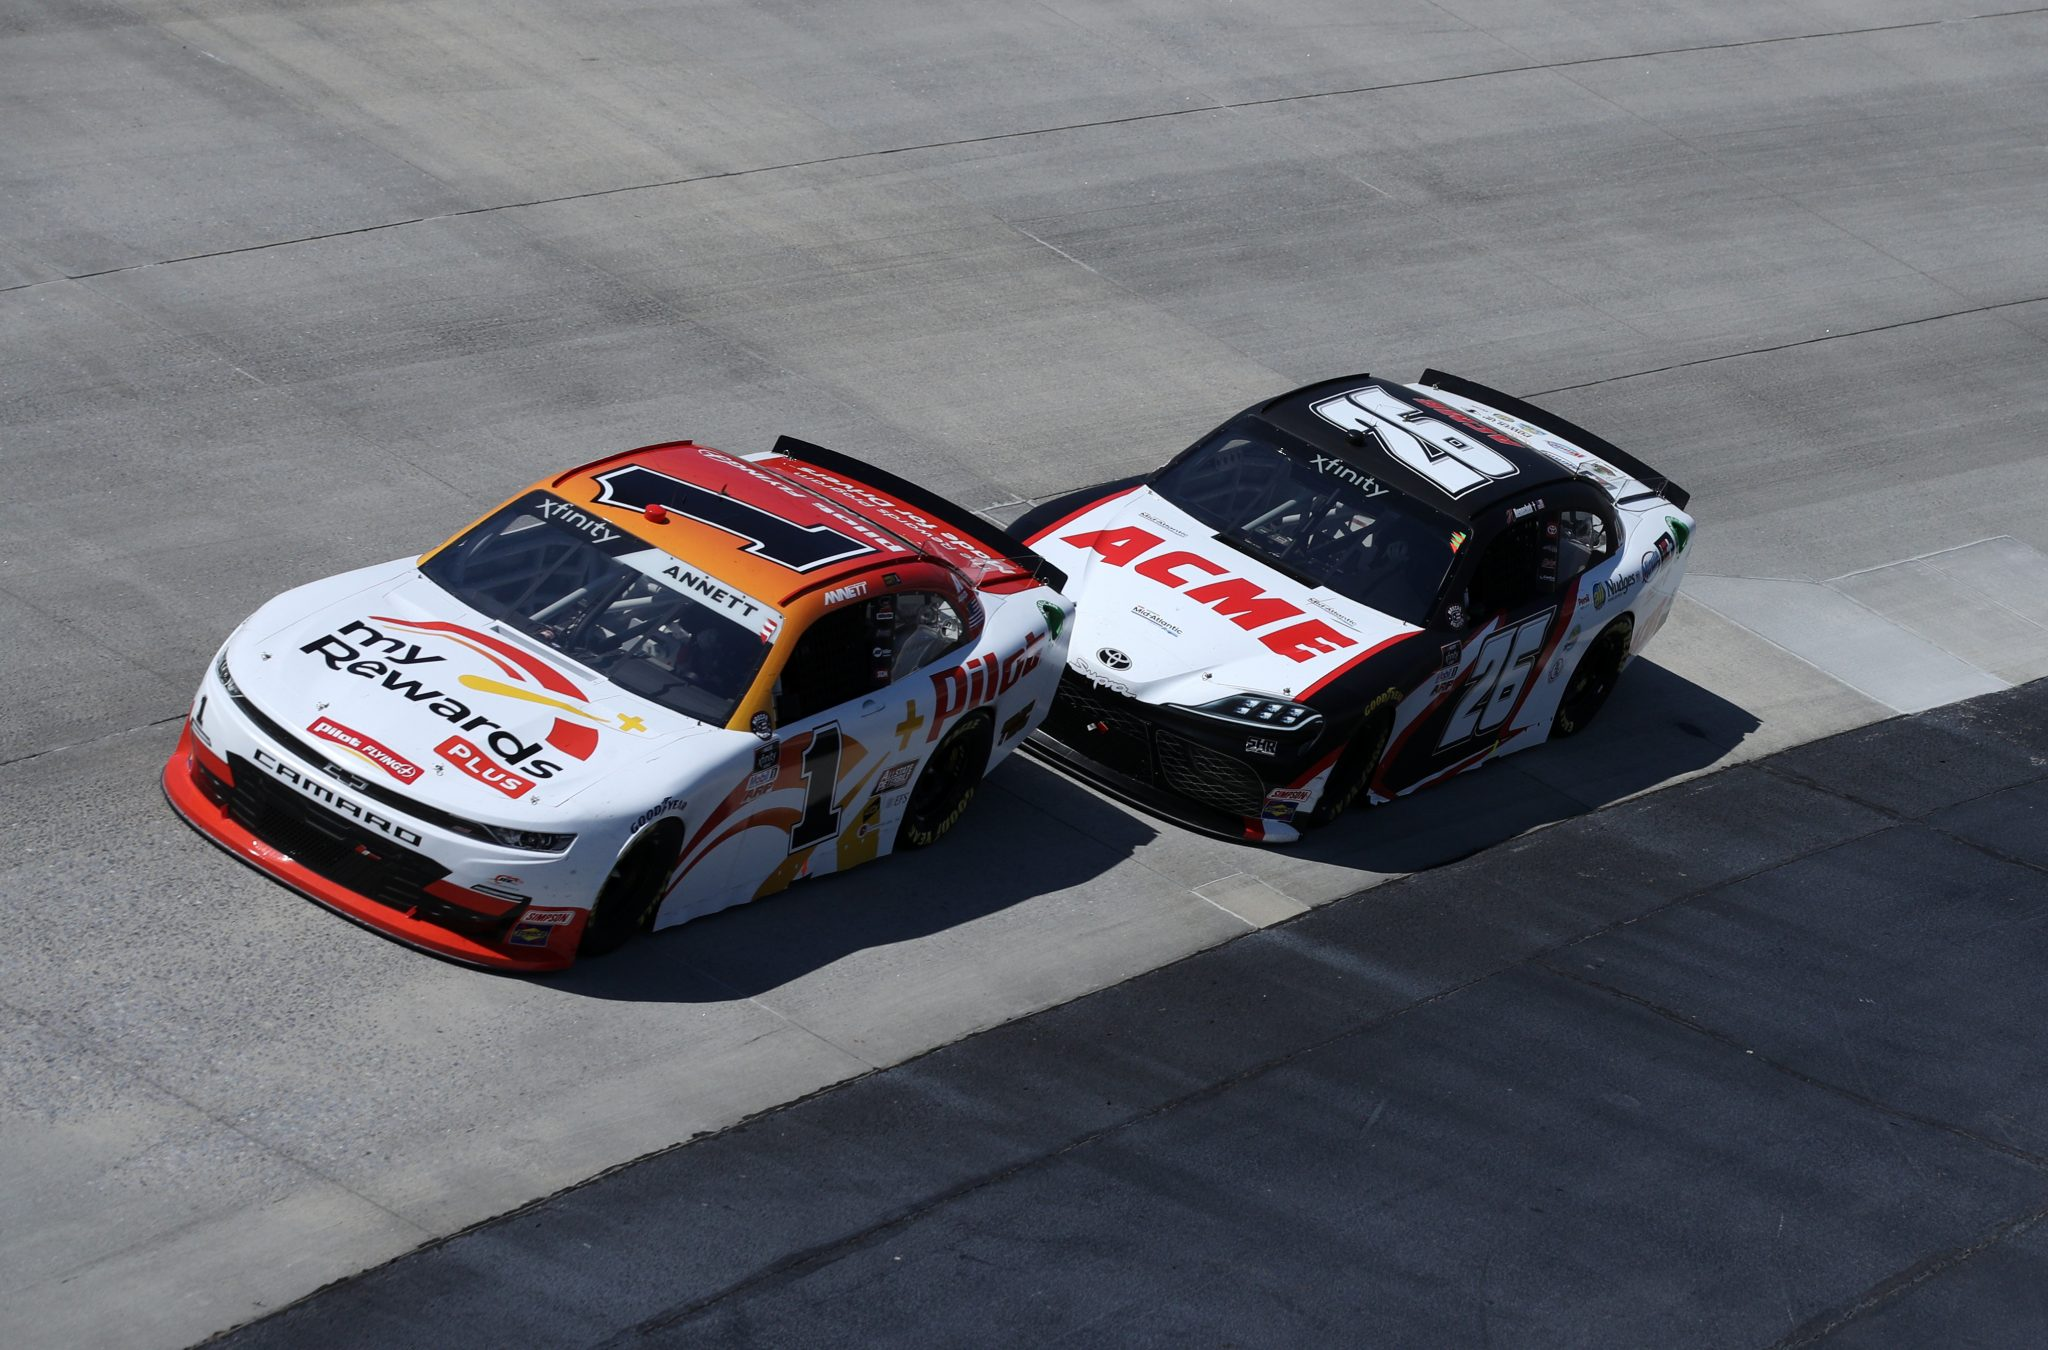 DOVER, DELAWARE - MAY 15: Michael Annett, driver of the #1 Pilot Flying J myRewards Plus Chevrolet, and John H. Nemechek, driver of the #26 ACME Toyota, race during the NASCAR Xfinity Series Drydene 200 race at Dover International Speedway on May 15, 2021 in Dover, Delaware. (Photo by Sean Gardner/Getty Images) | Getty Images